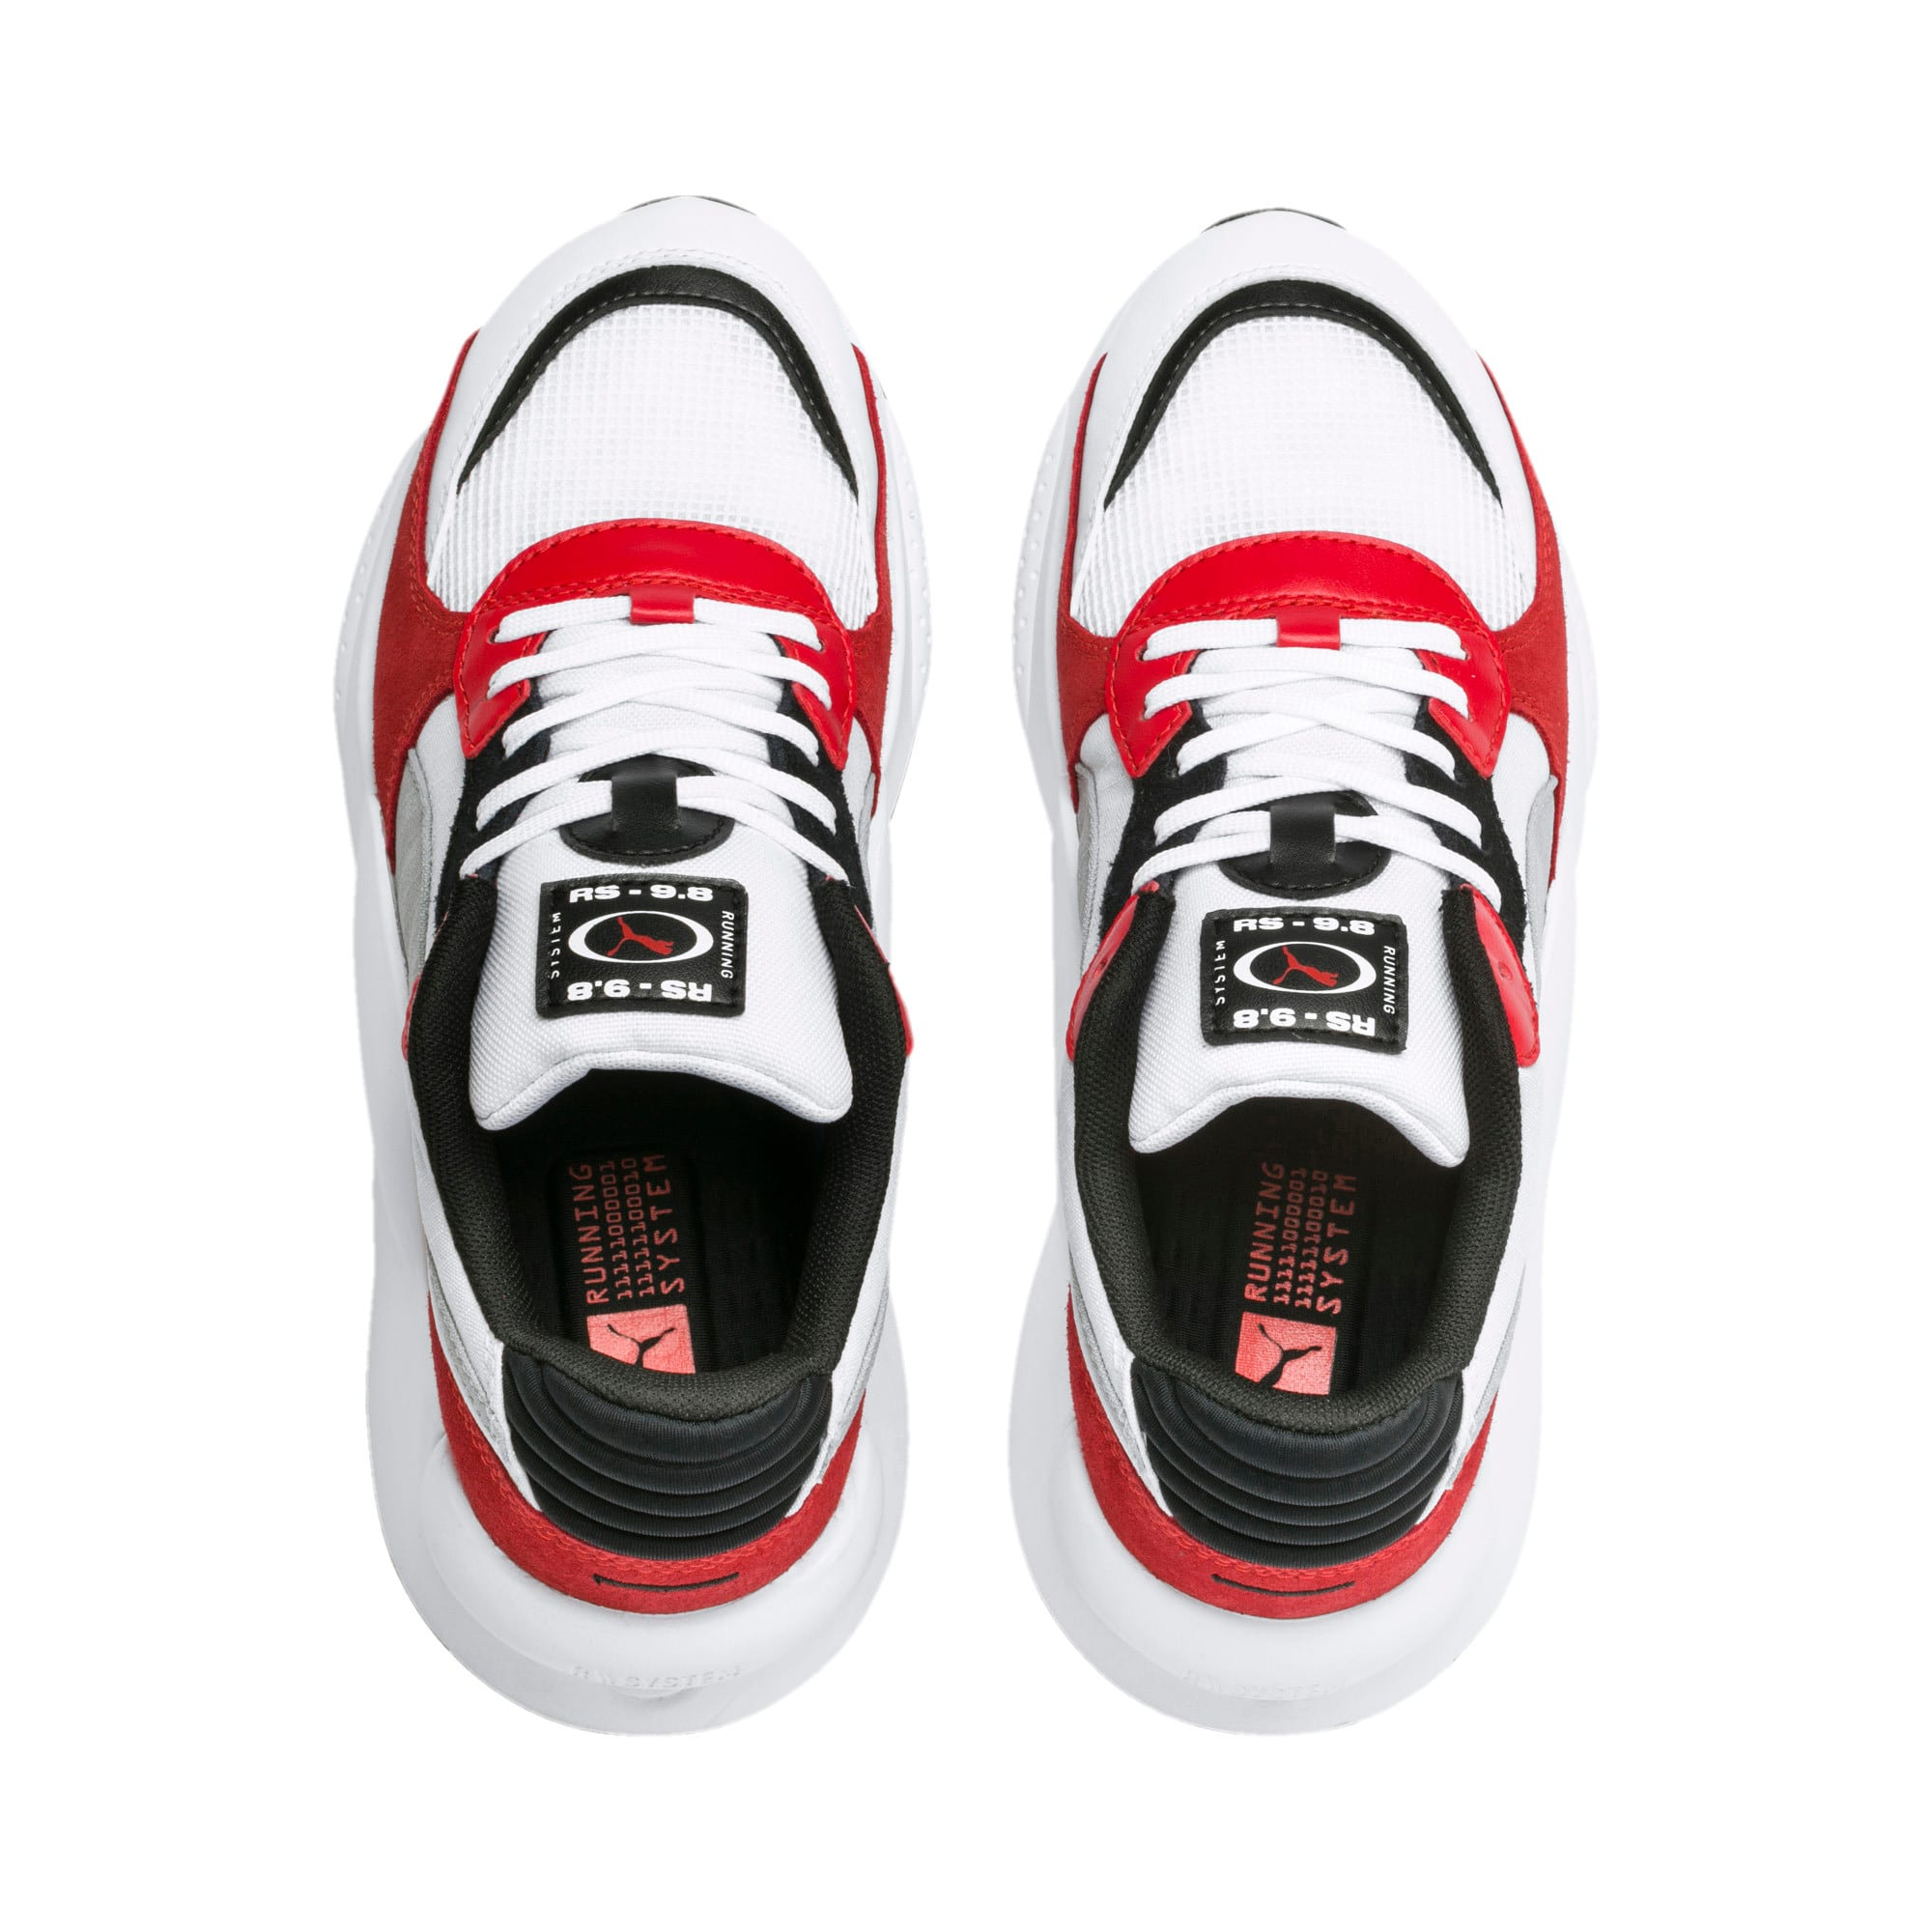 Thumbnail 6 of RS 9.8 Space Sneakers JR, Puma White-High Risk Red, medium